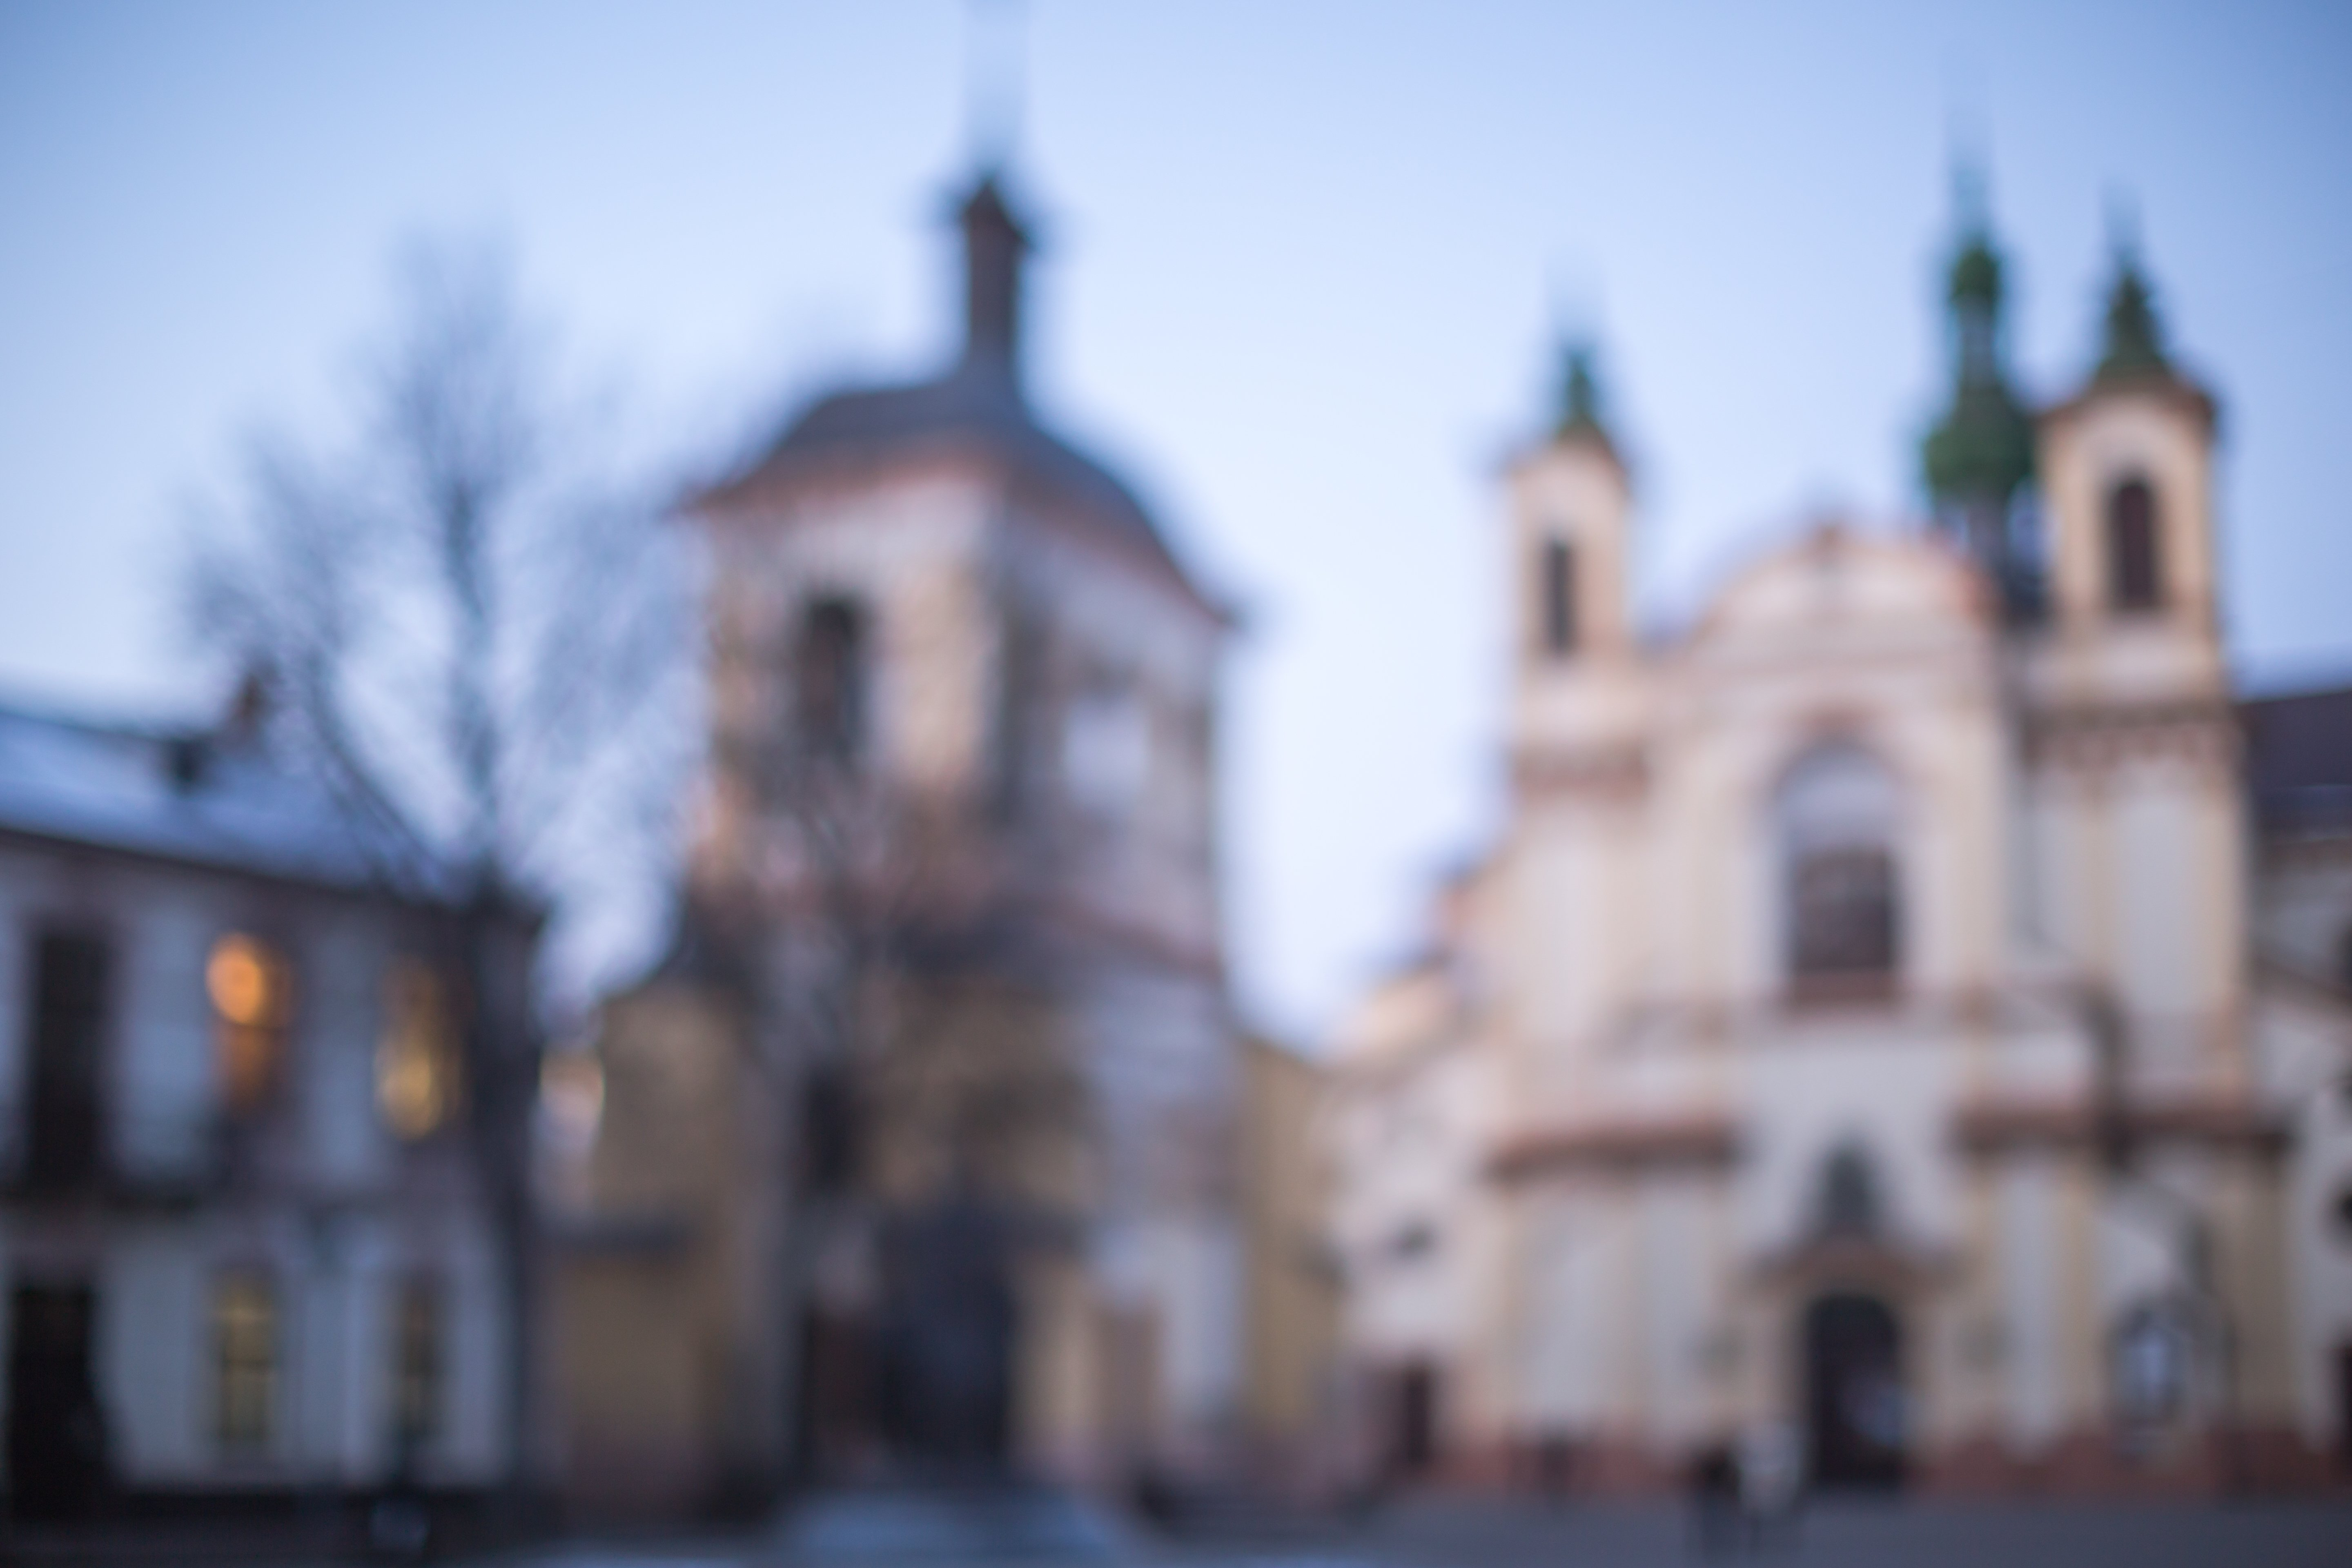 Blurred church at sunset example image 1